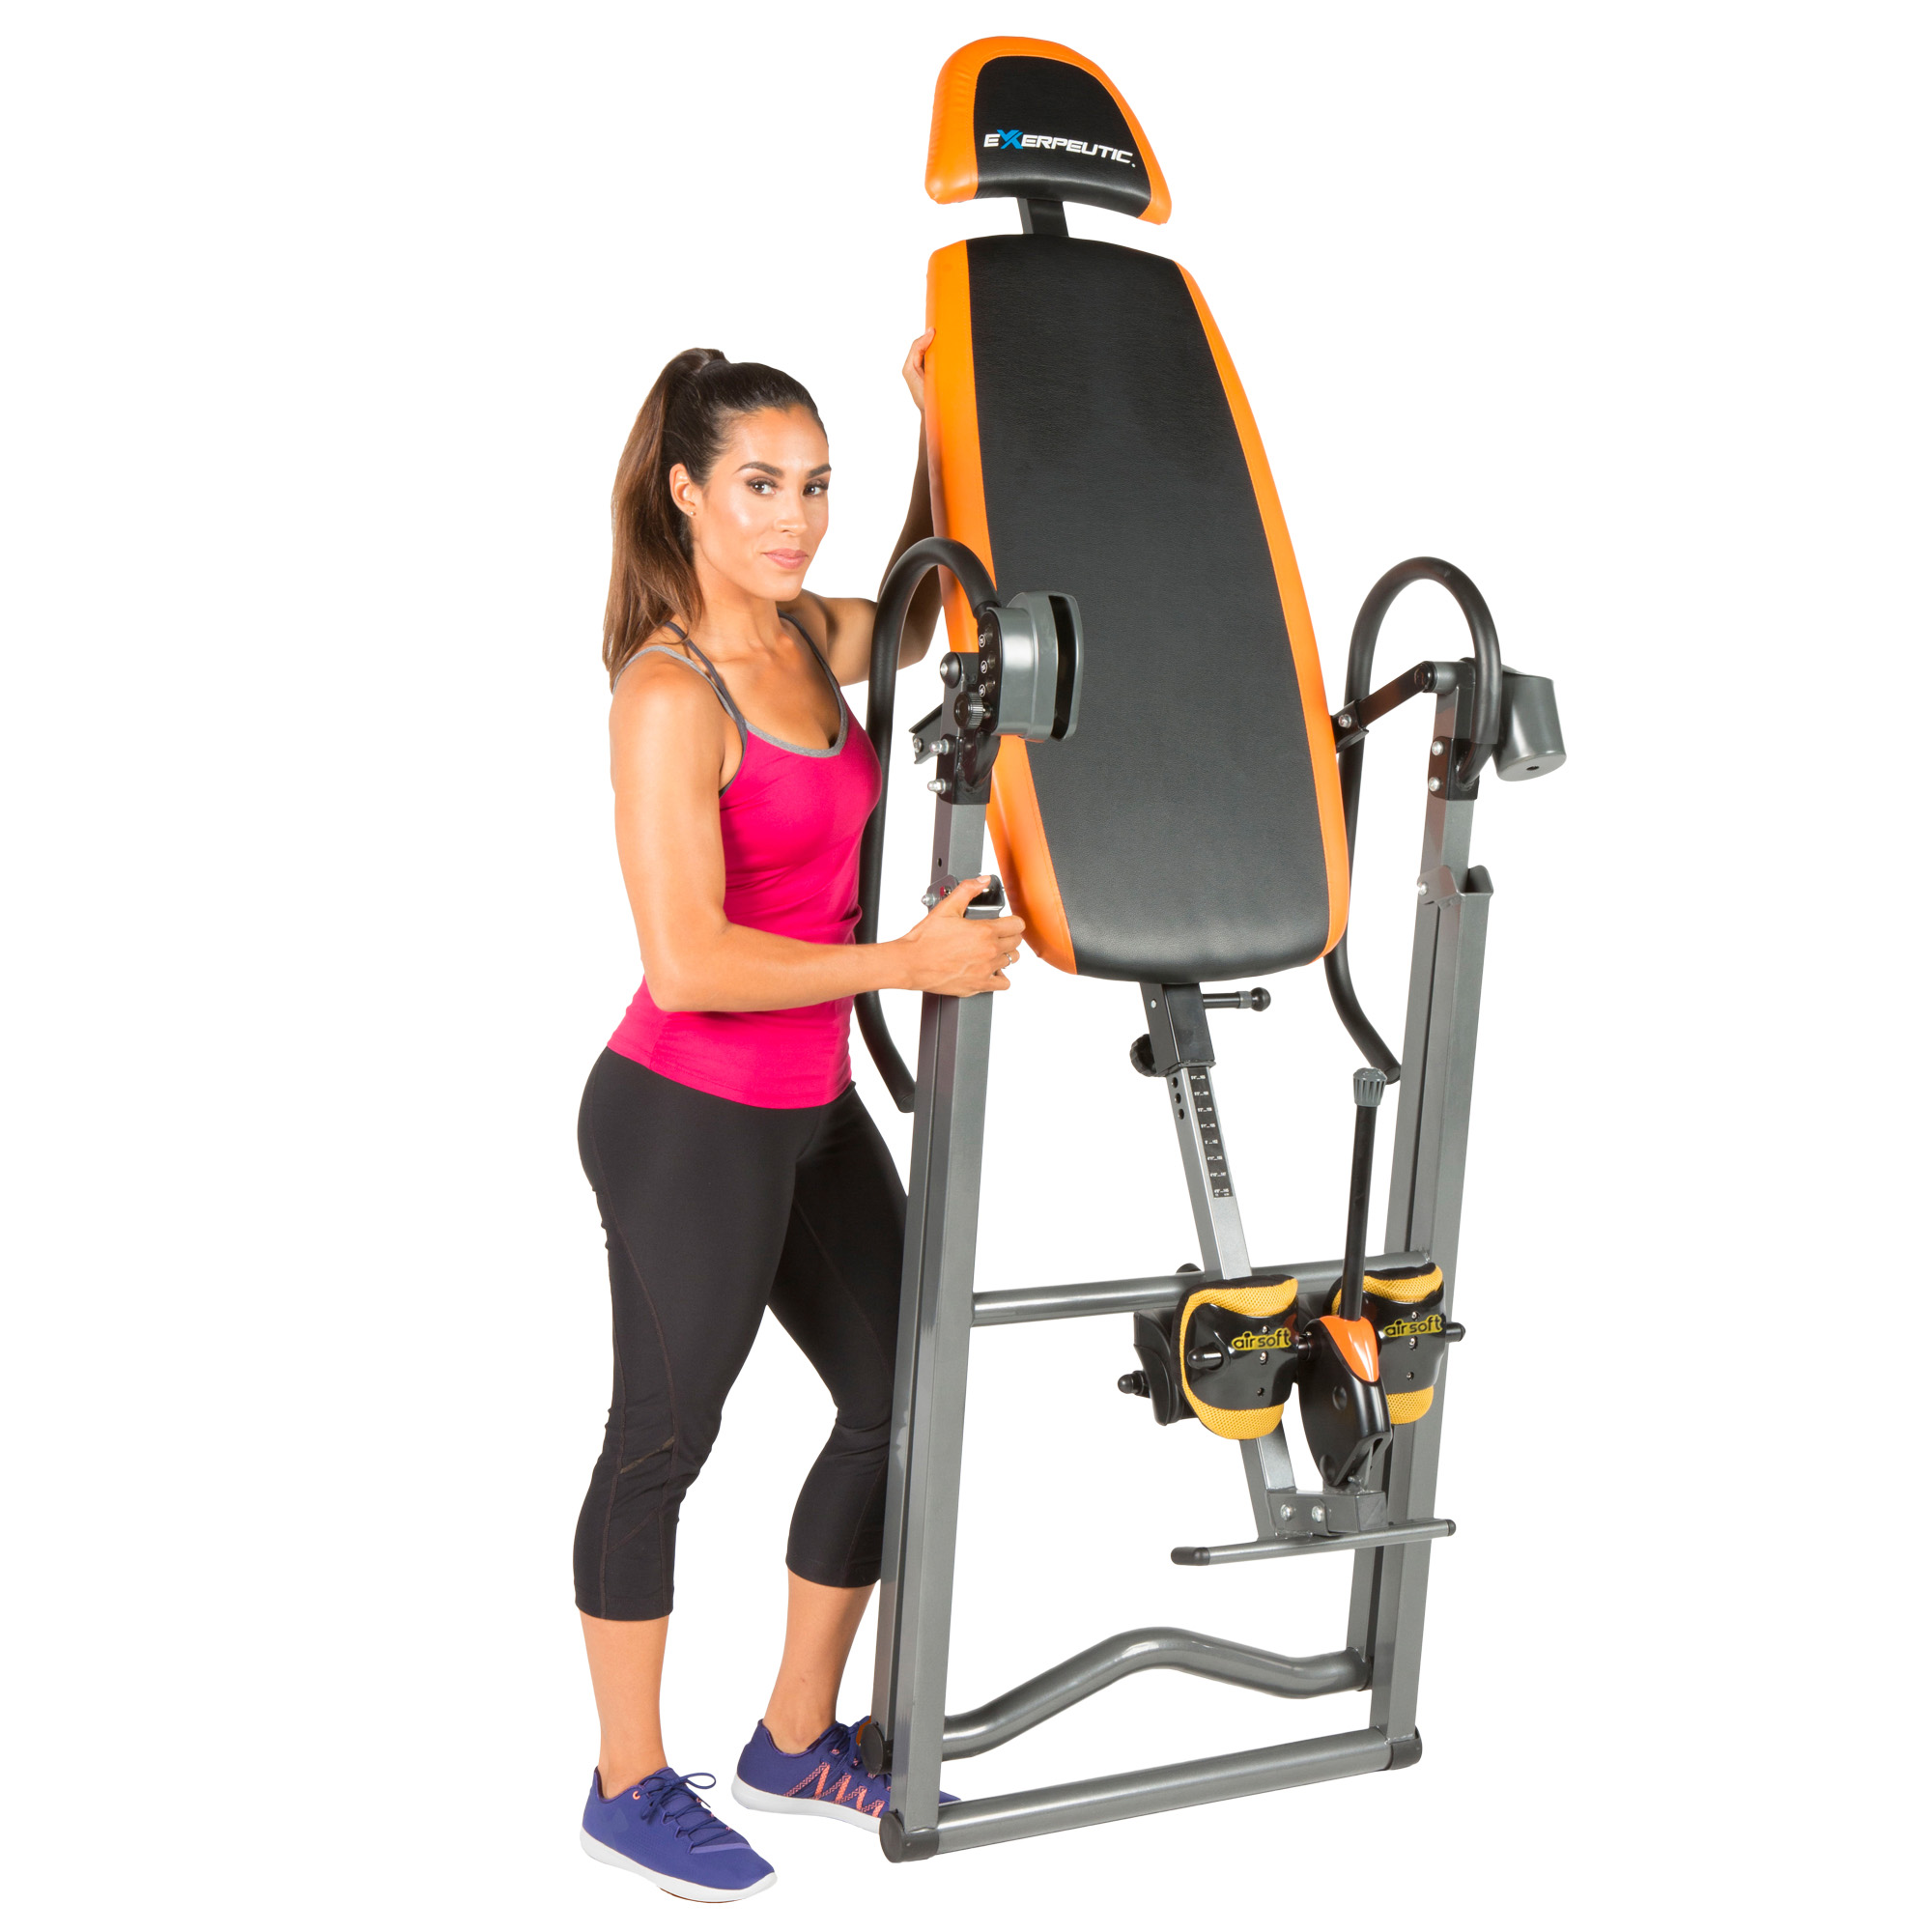 EXERPEUTIC 475SL Inversion Table with AIRSOFT No Pinch Ankle Holders and SURELOCK Safety Ratchet System